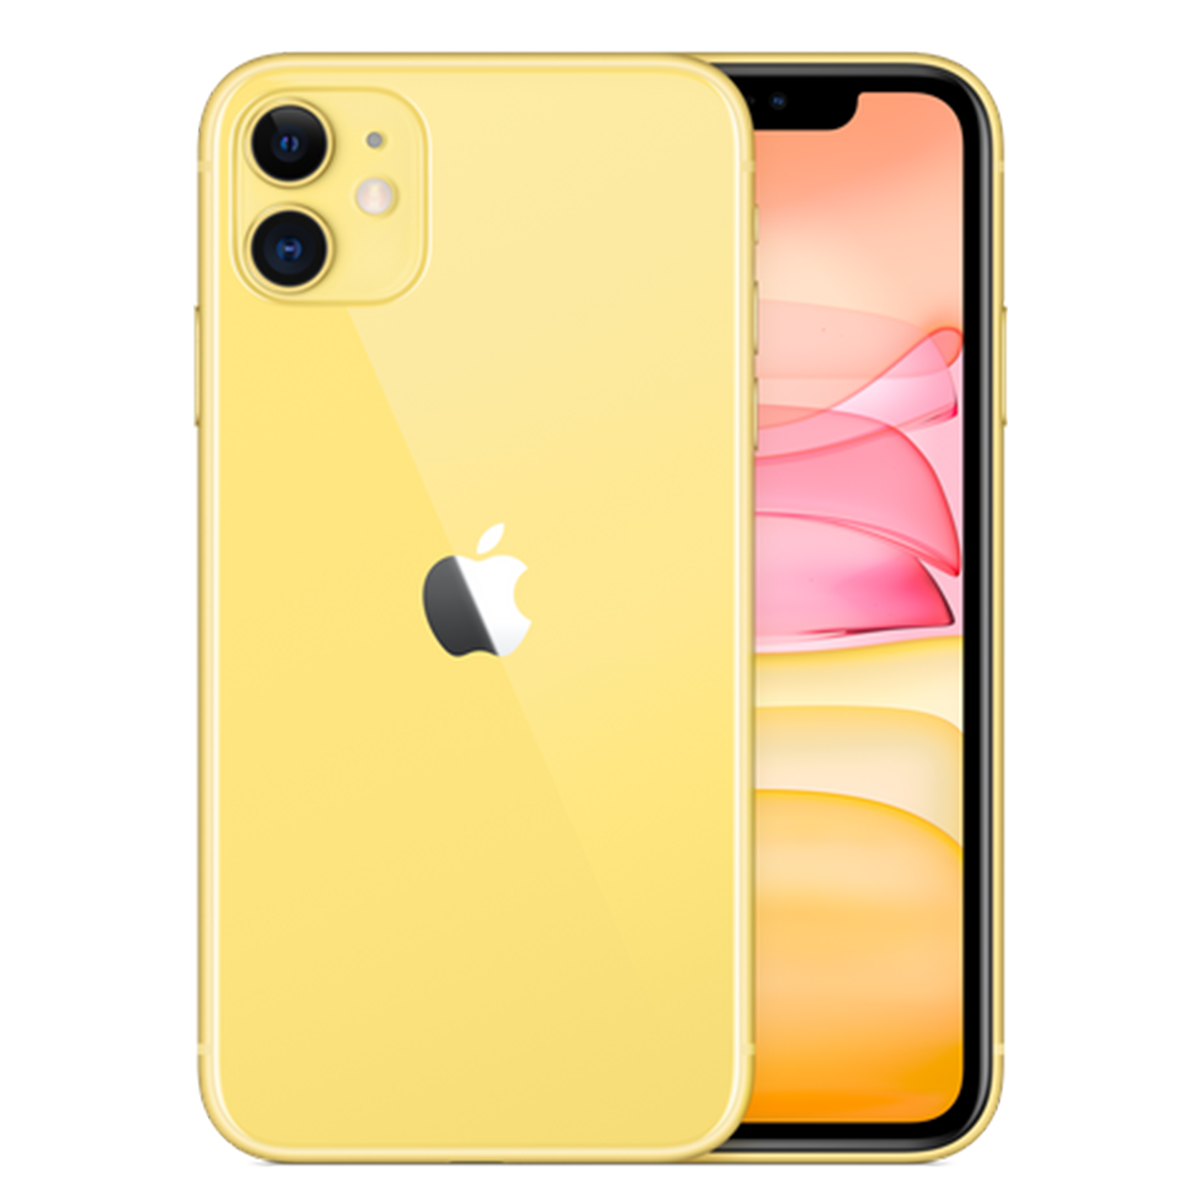 iPhone 11, Yellow, 256GB (Official Stock)